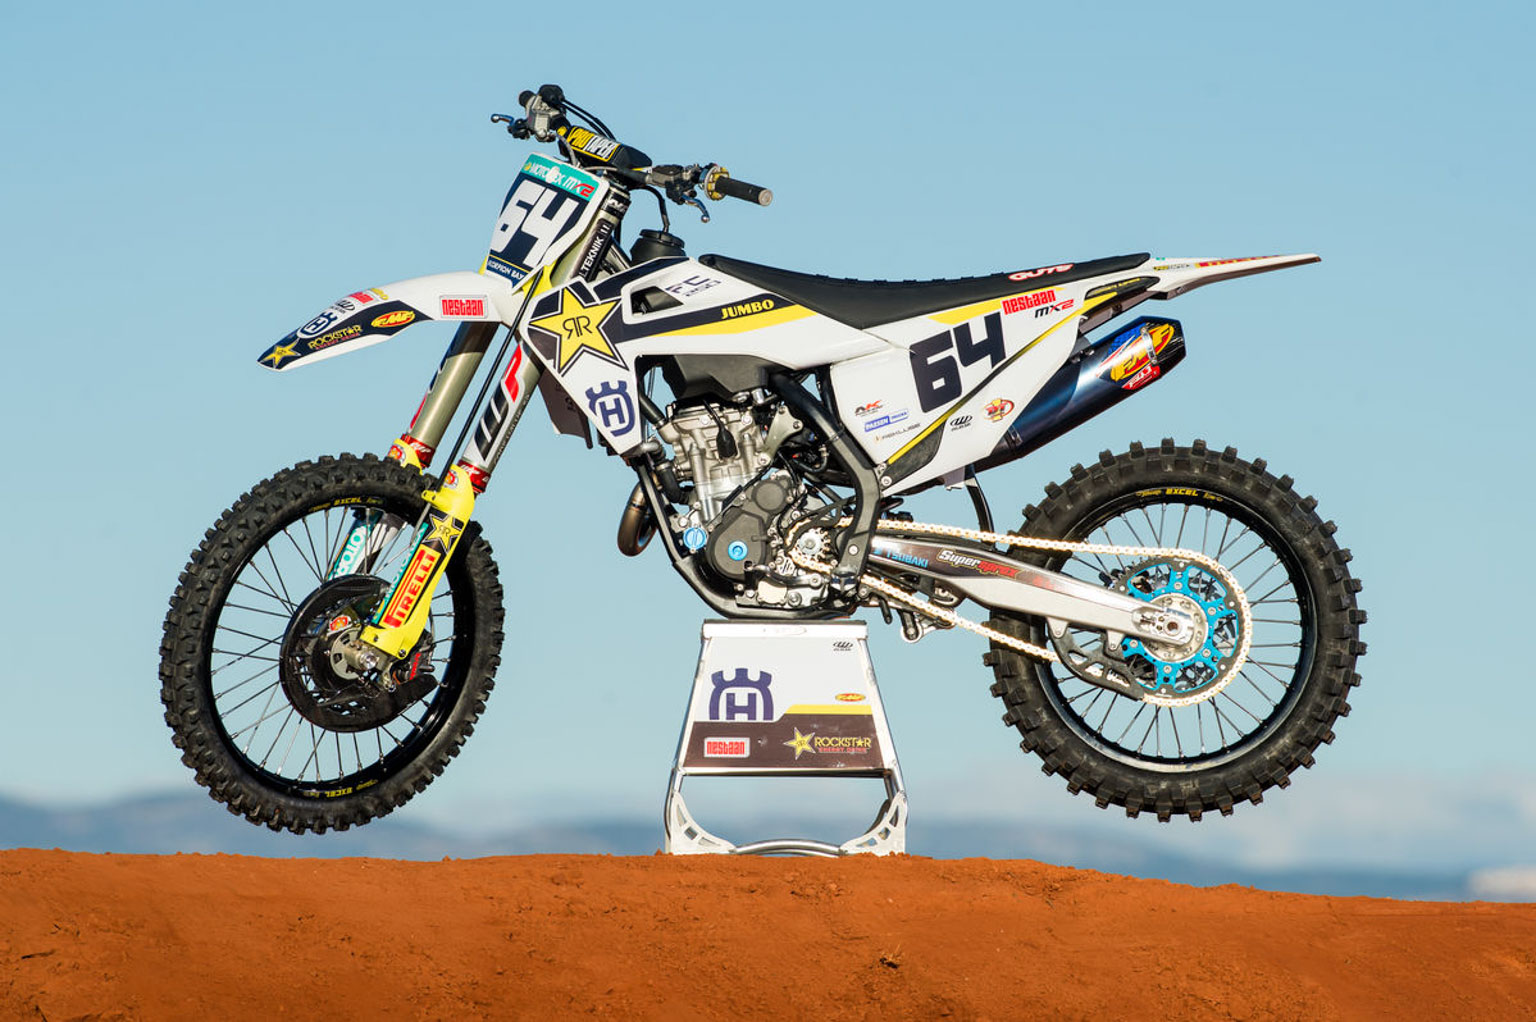 42344_Covington_Bike_Rockstar Energy Husqvarna MX2 Factory Racing_shotbybavo_7